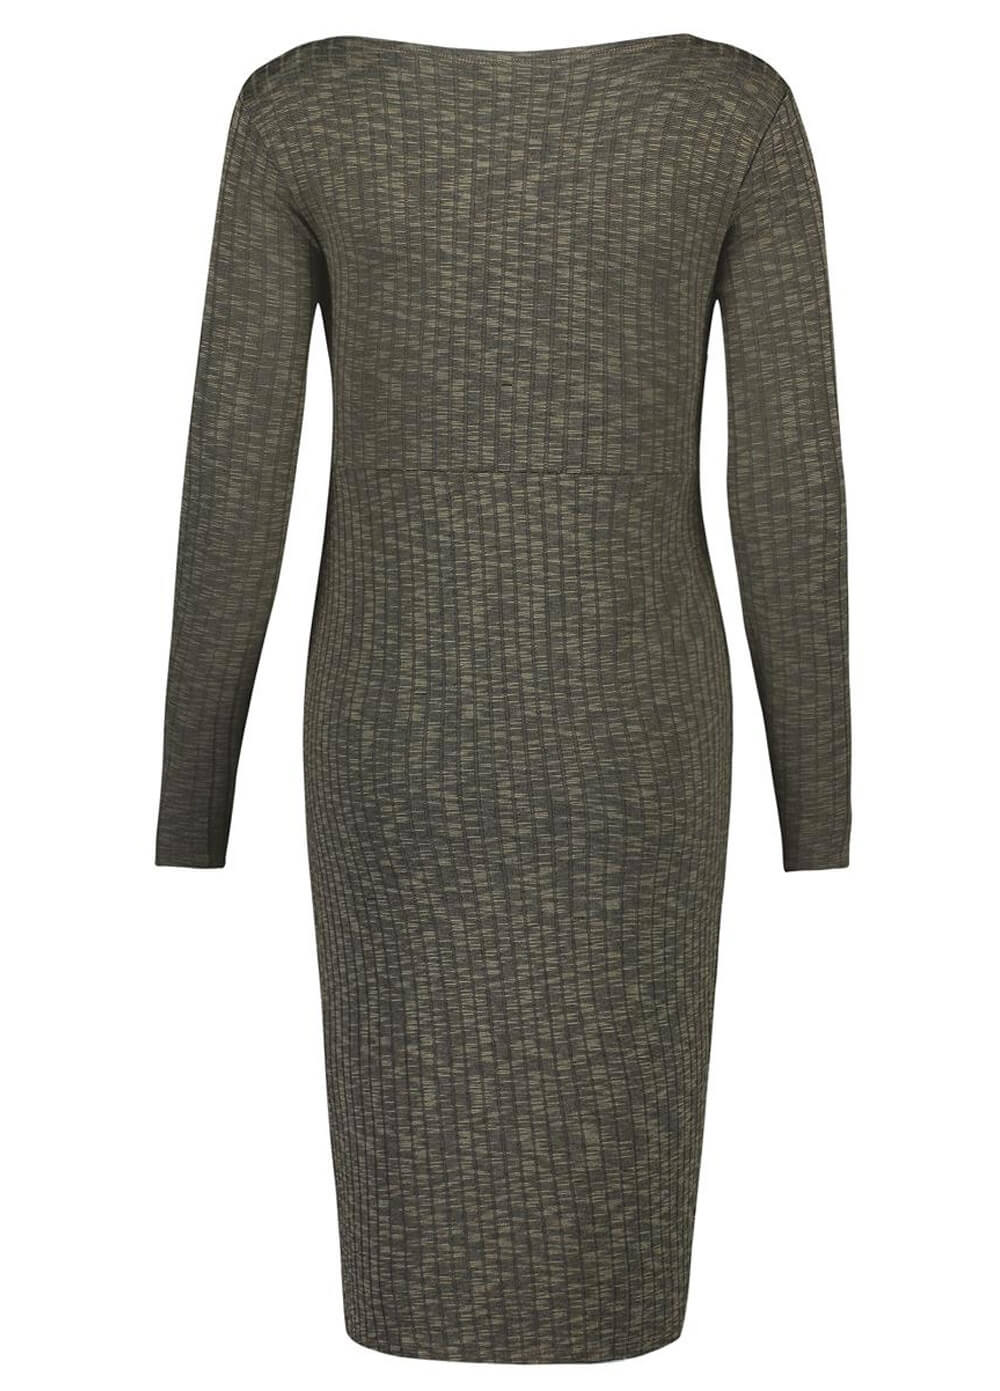 Giulia Maternity & Nursing Knit Dress in Army by Noppies